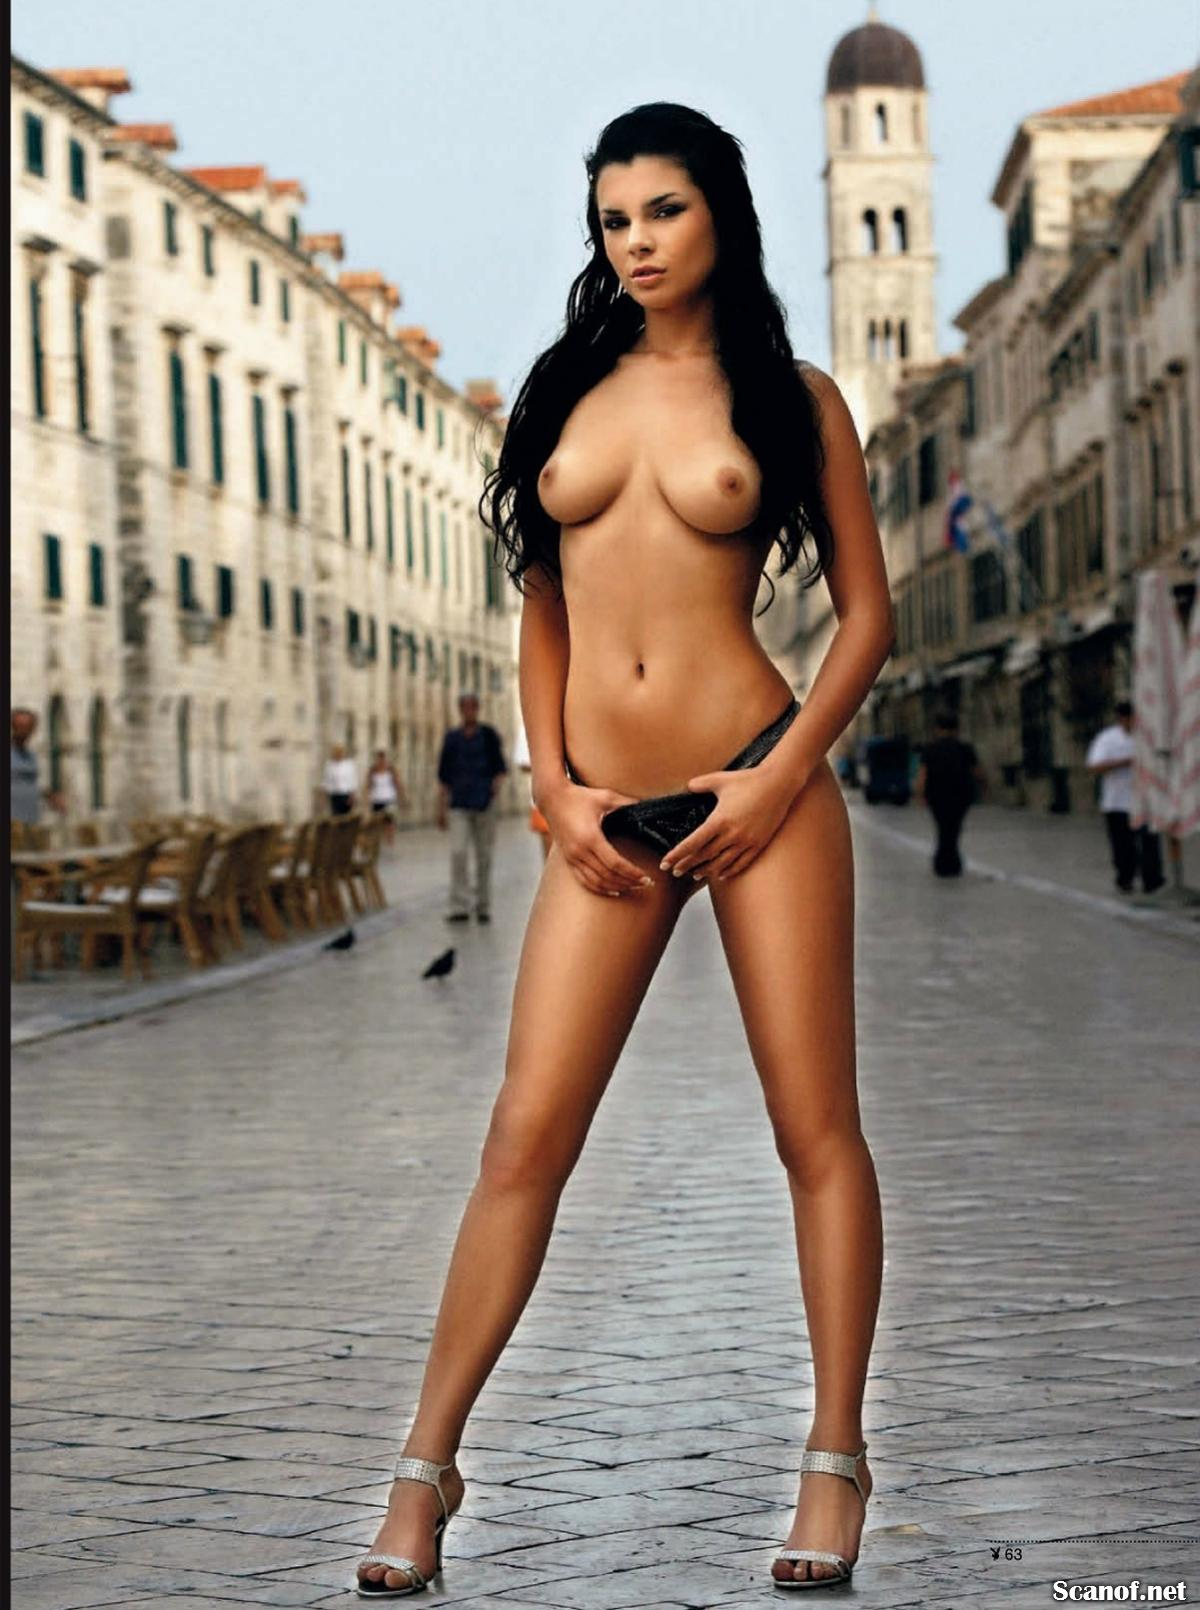 543757669_Playboy_2013_08_Czech_Scanof.net_065_123_1029lo.jpg